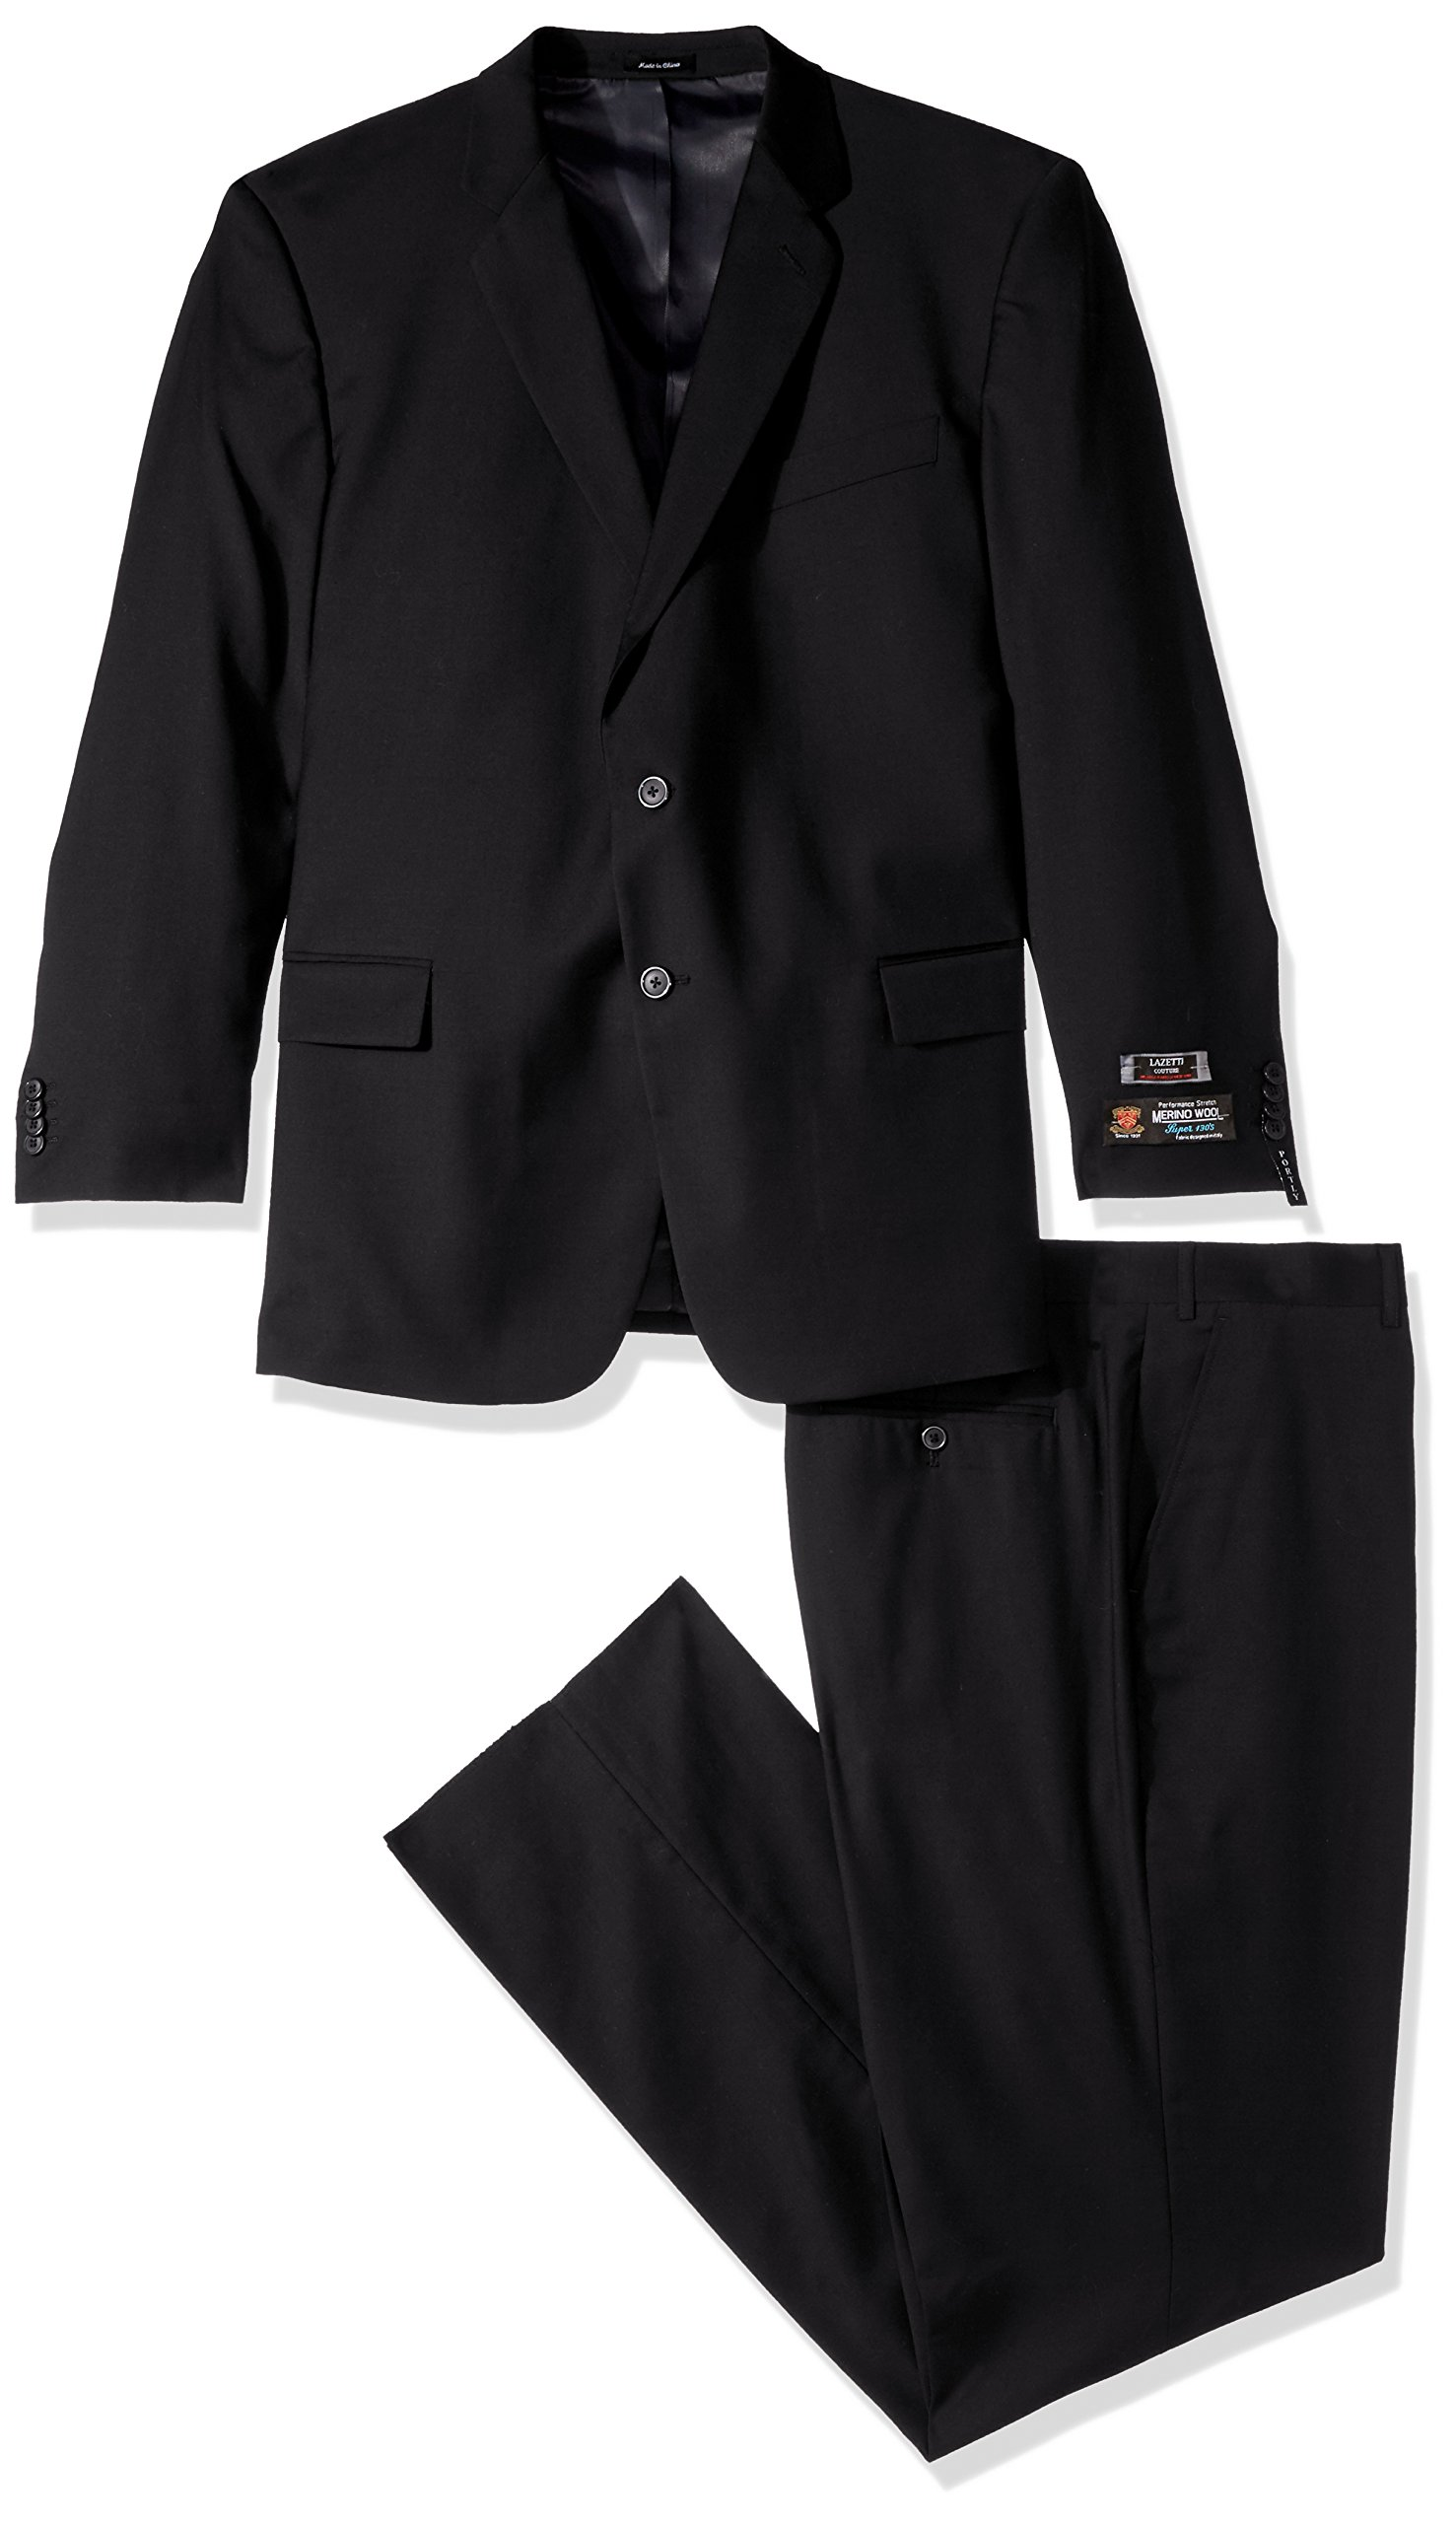 Lazetti Couture Men's Portly Wool Suit, Black, 48 Regular by Lazetti Couture